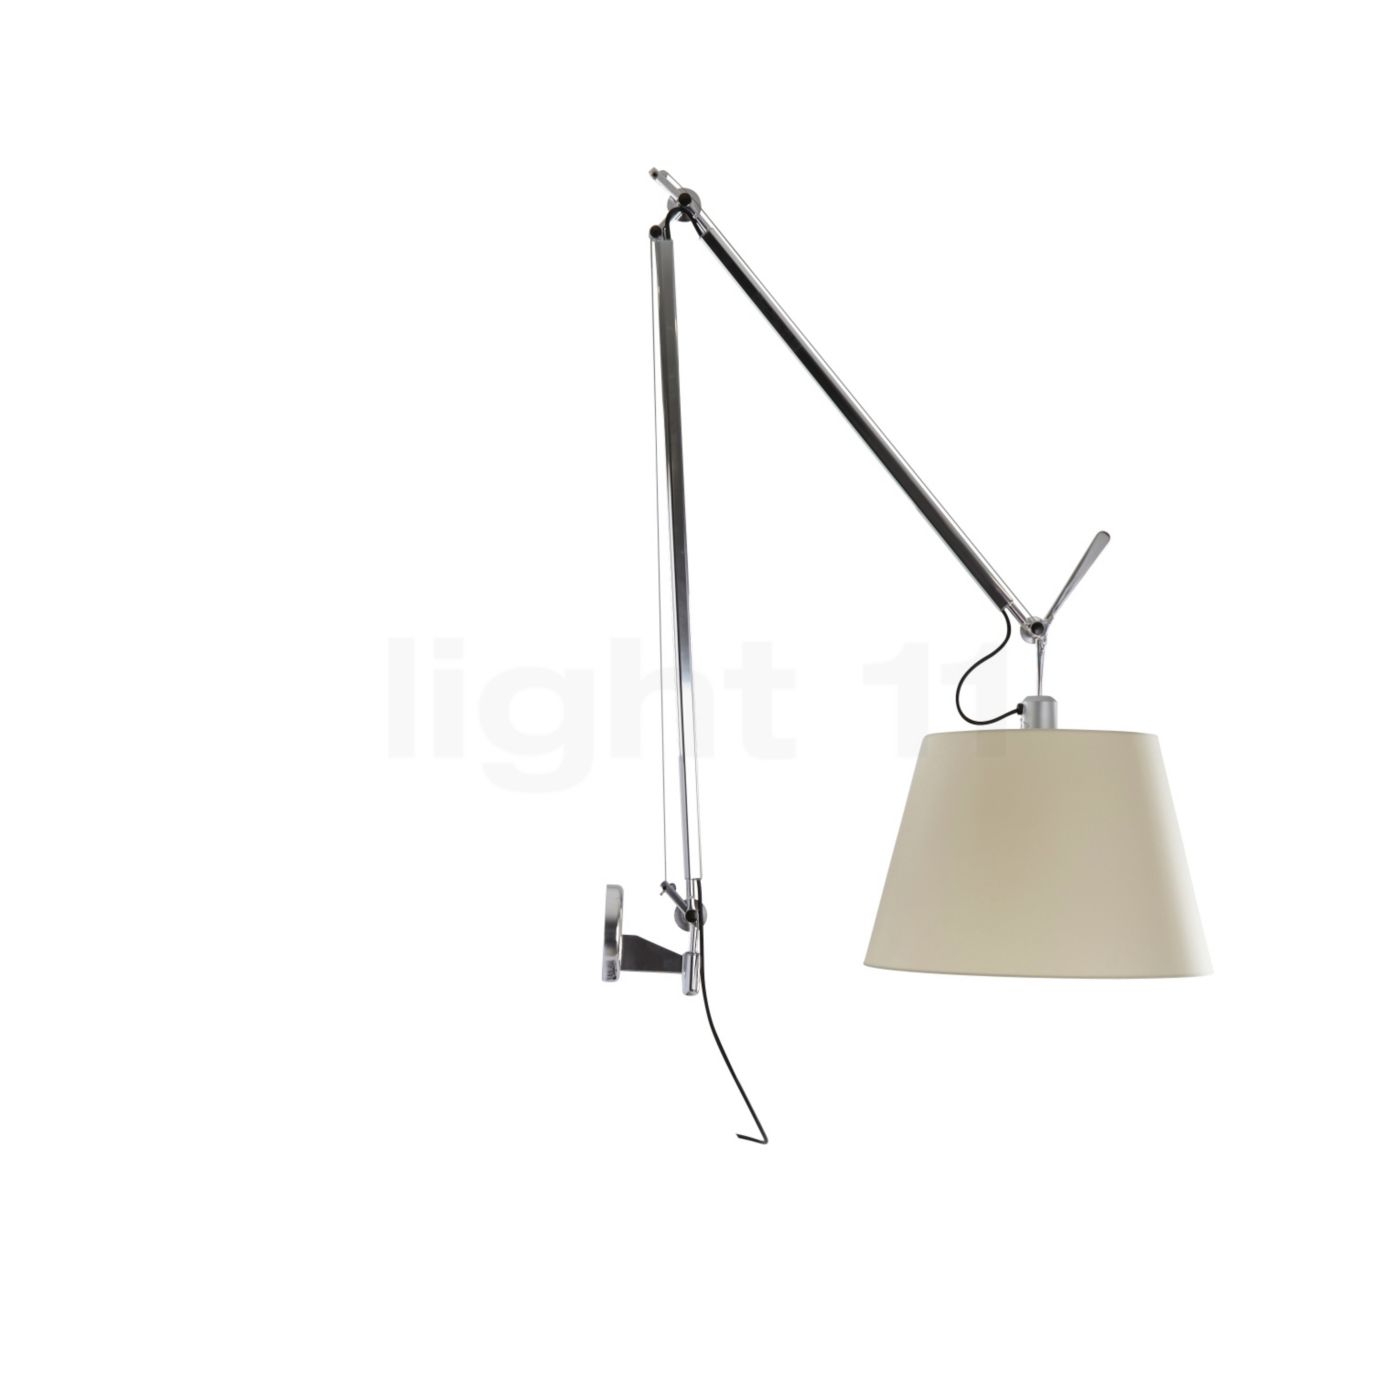 tolomeo mega terra good tolomeo mega terra raso with tolomeo mega terra tolomeo mega terra. Black Bedroom Furniture Sets. Home Design Ideas